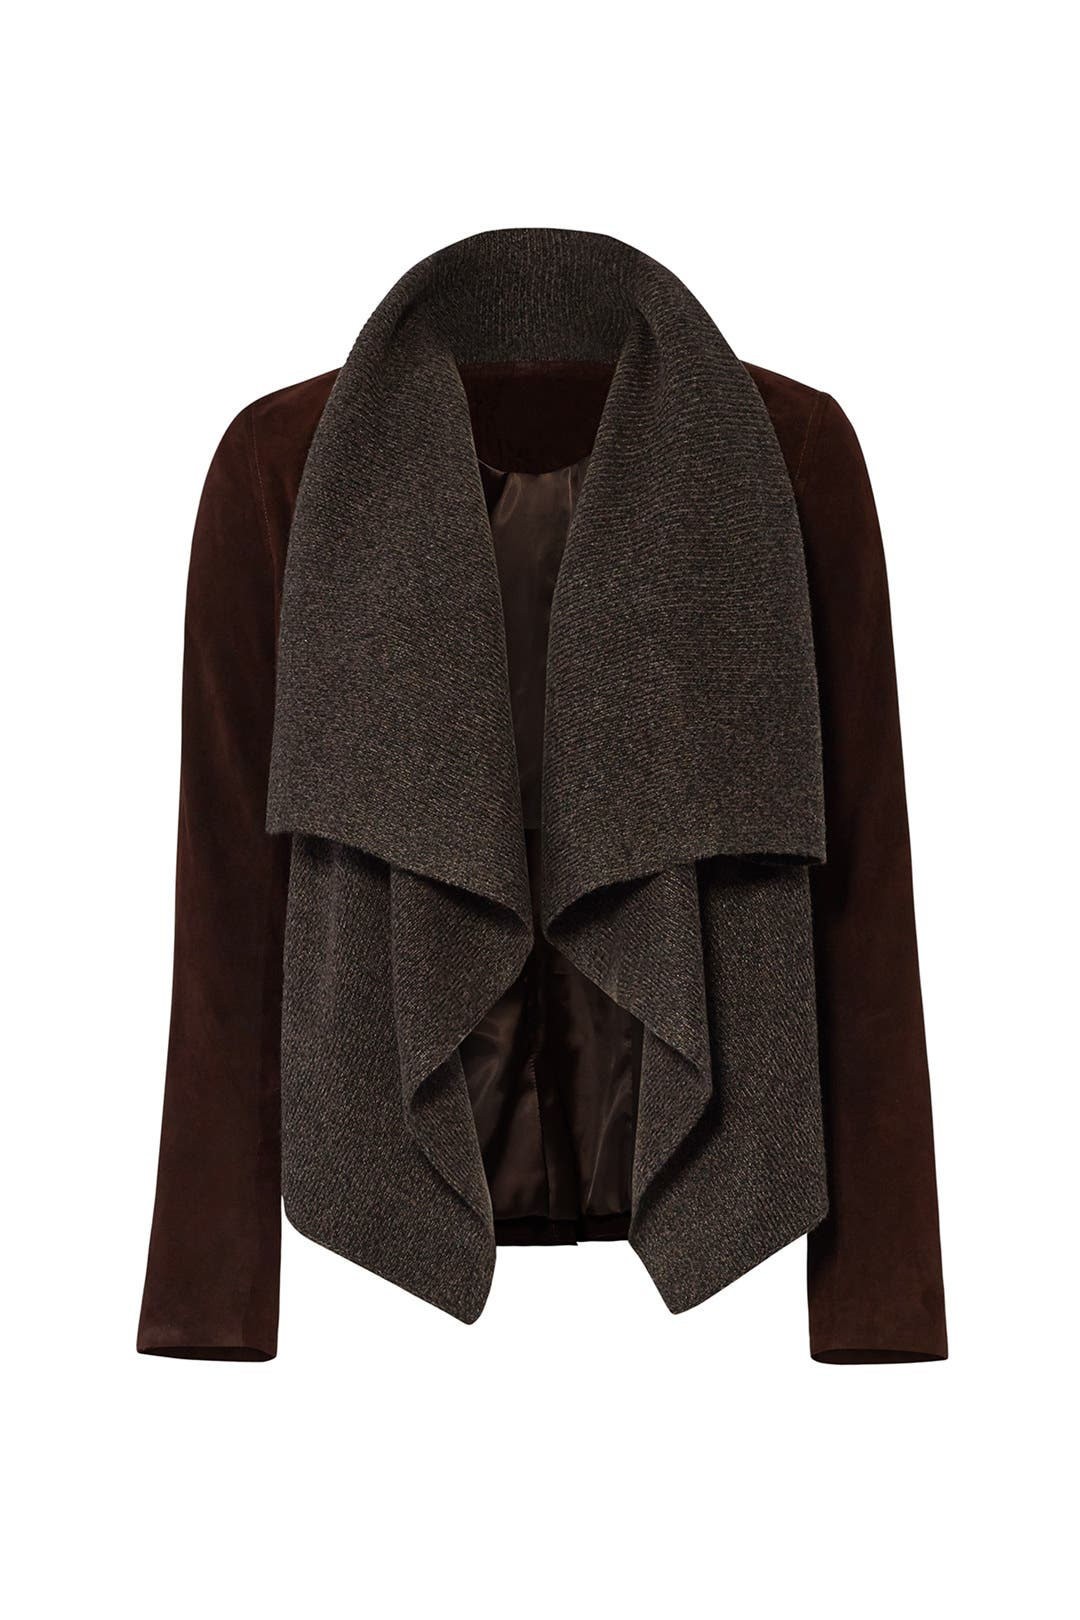 Waterfall Jacket by Bagatelle for $70   Rent the Runway